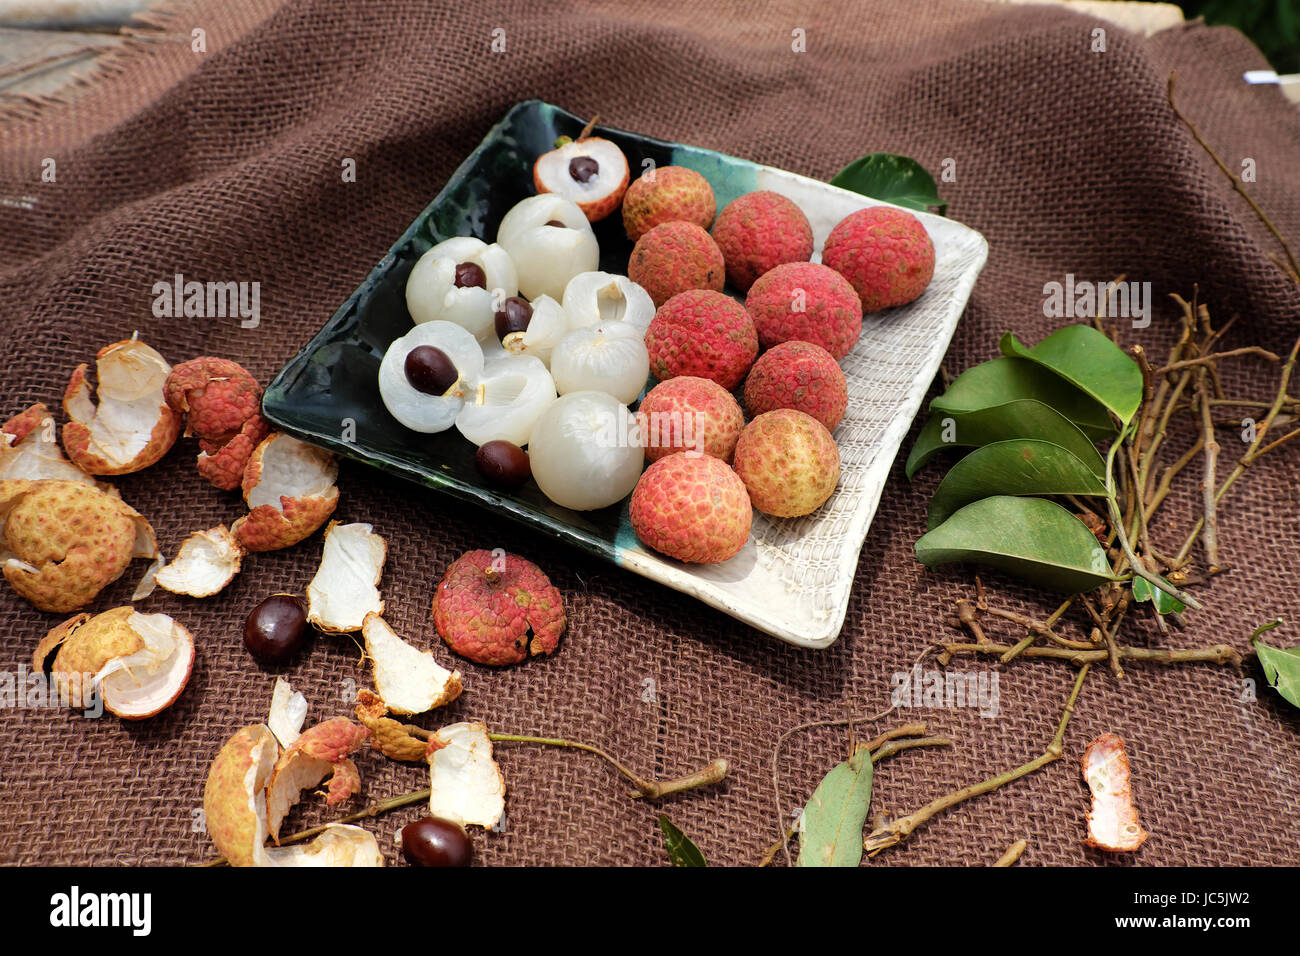 Close up plate of fruit on brown background, litchi or lychee fruits or Vai thieu. Red fruit peel with juicy pulp - Stock Image